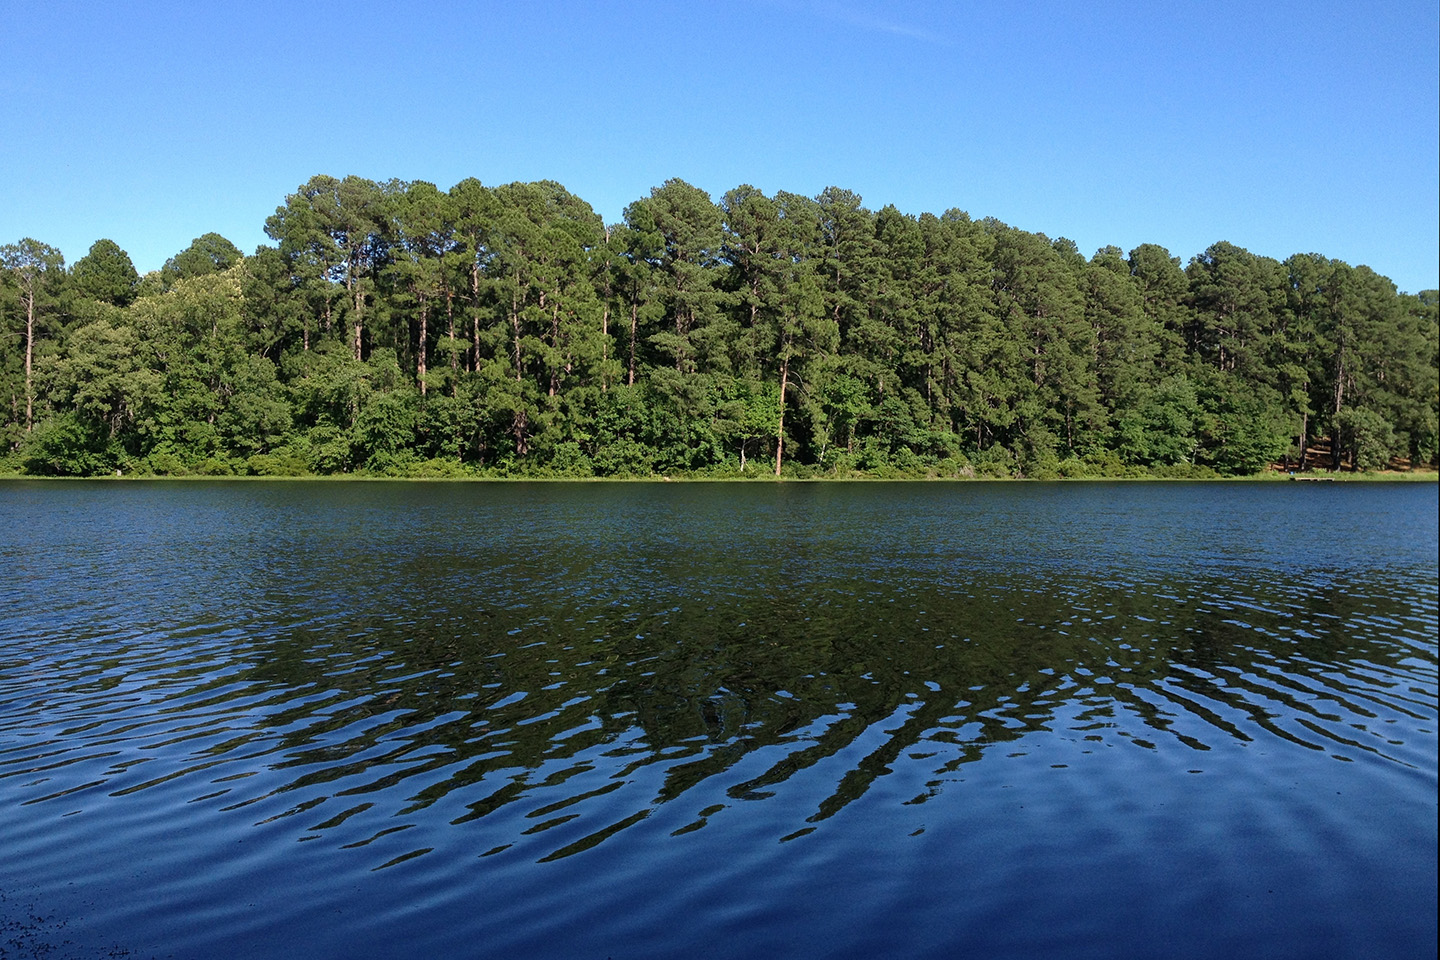 A view of Lake Palestine, with green trees in the distance